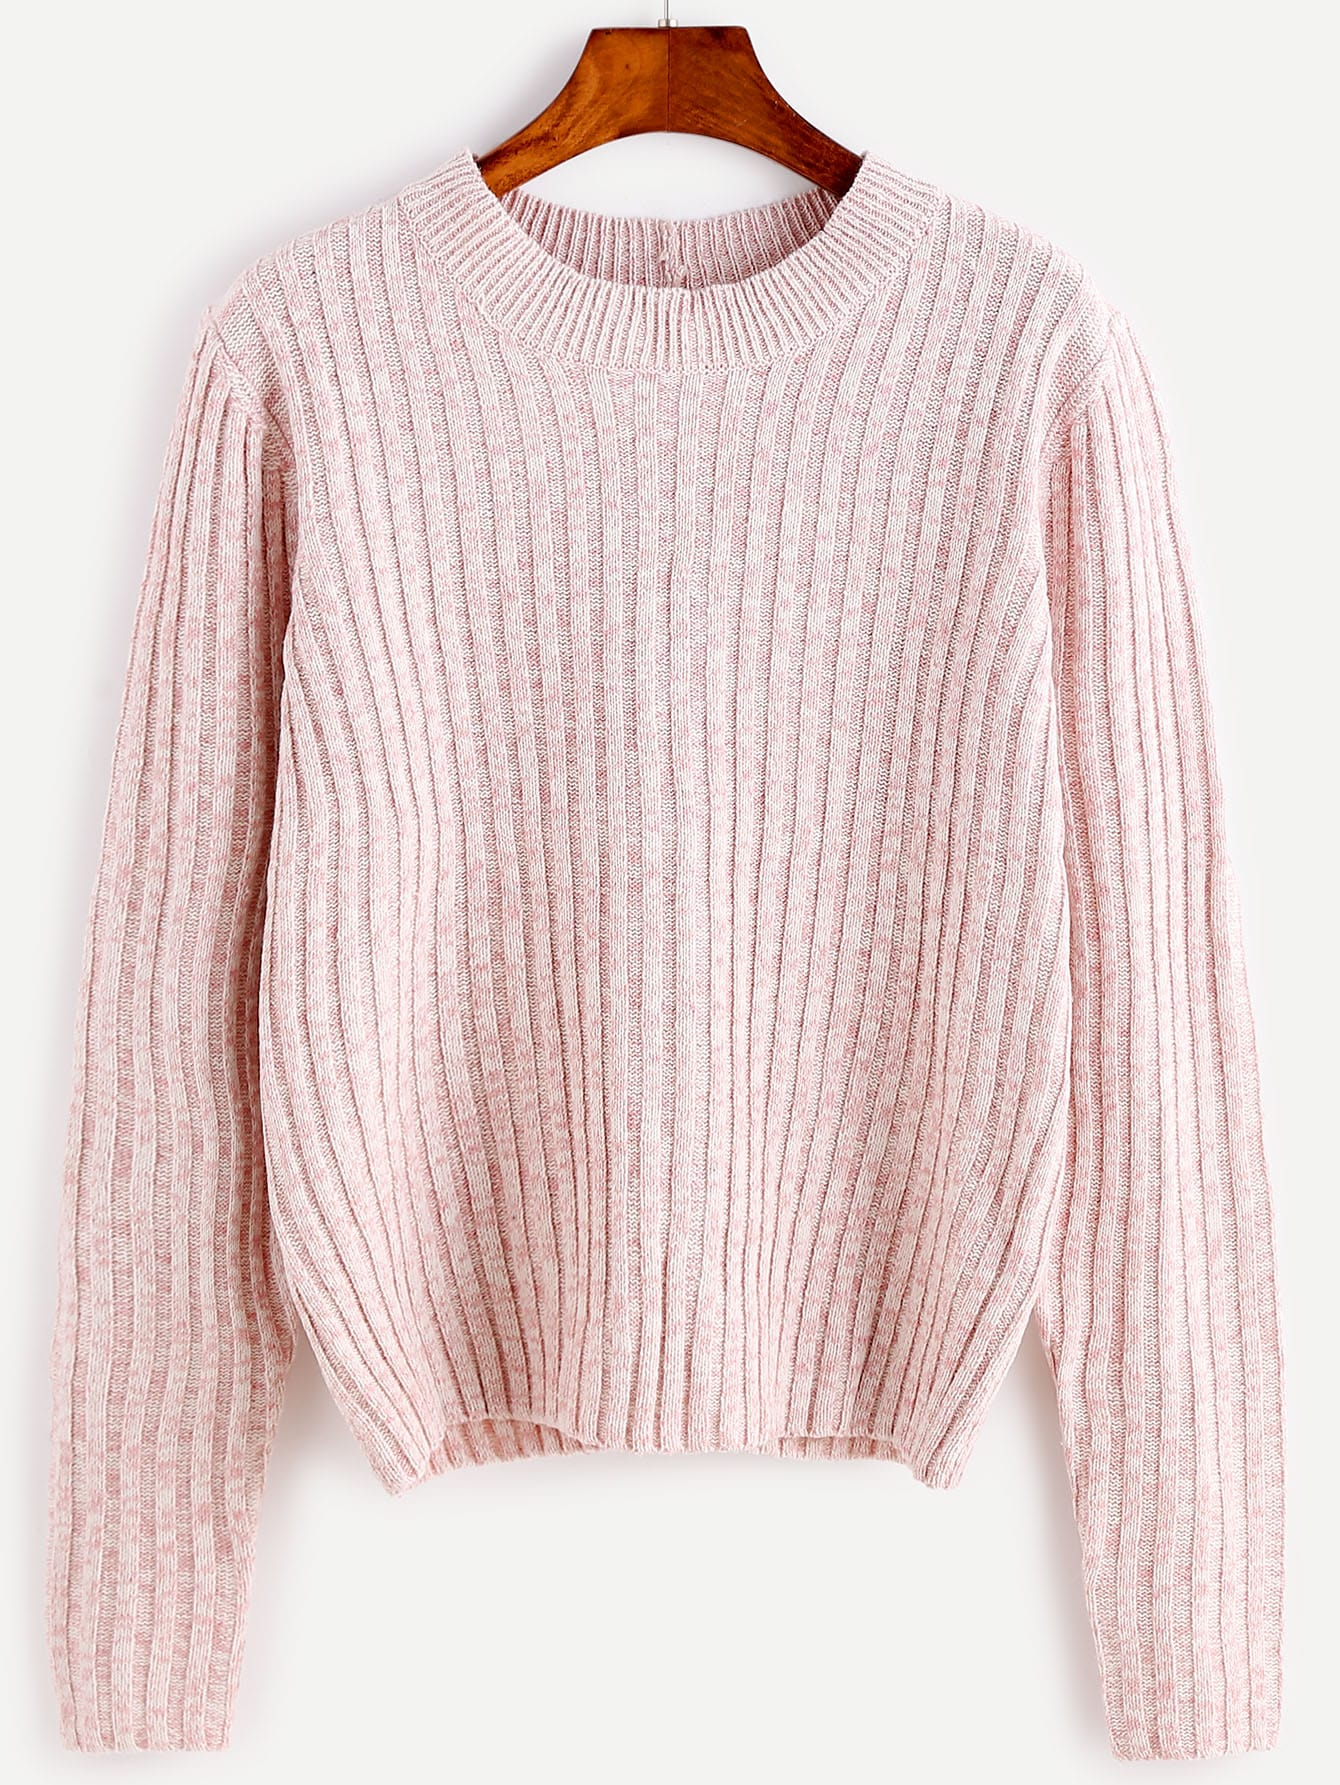 Pink Ribbed Lace Up Back Sweater sweater160915467